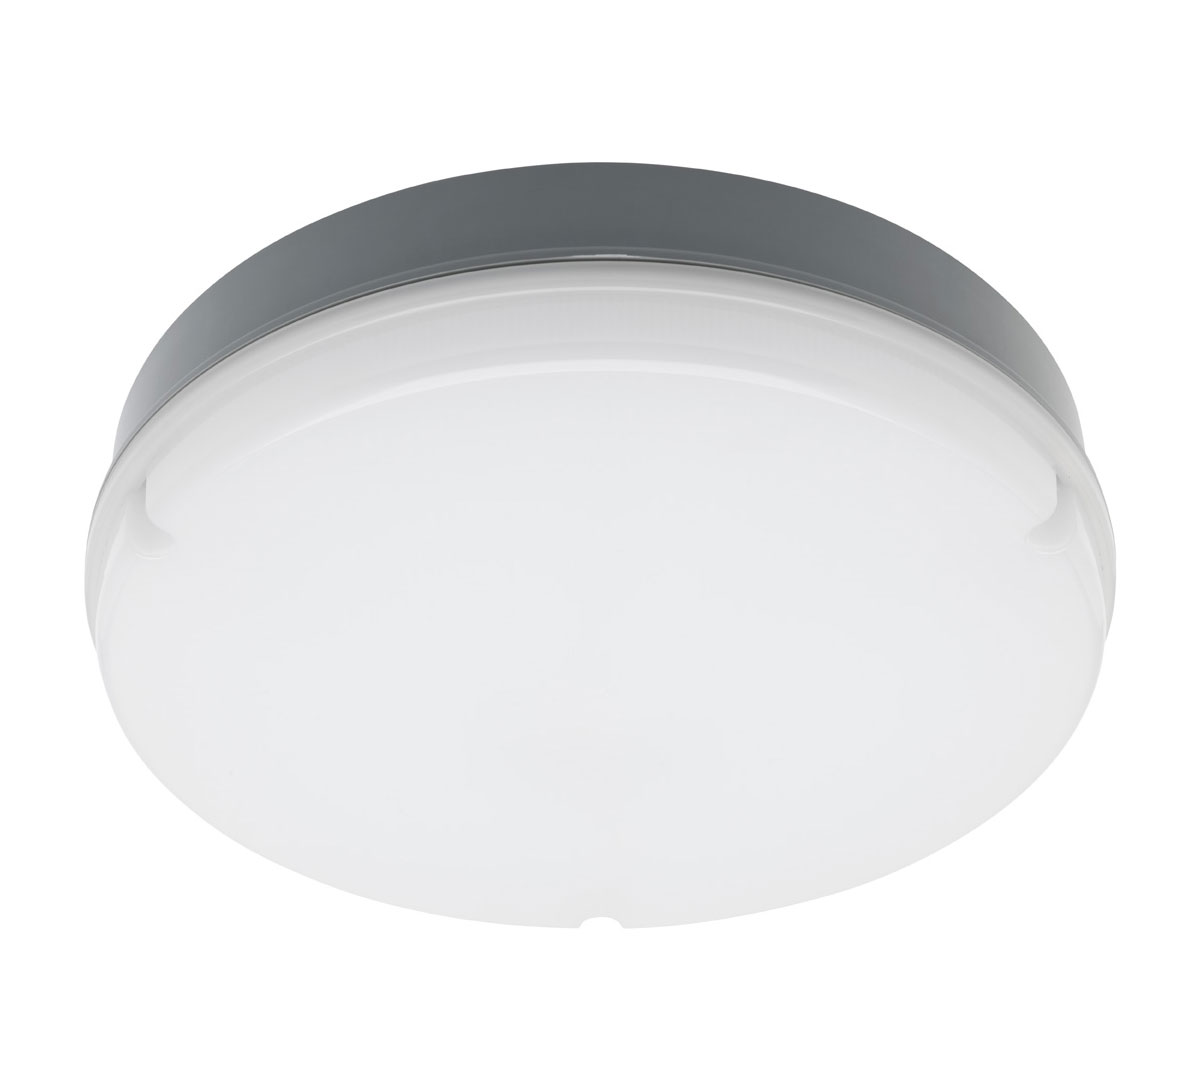 Swell 20w Led Ceiling Flush Oyster Grey Finish Cool